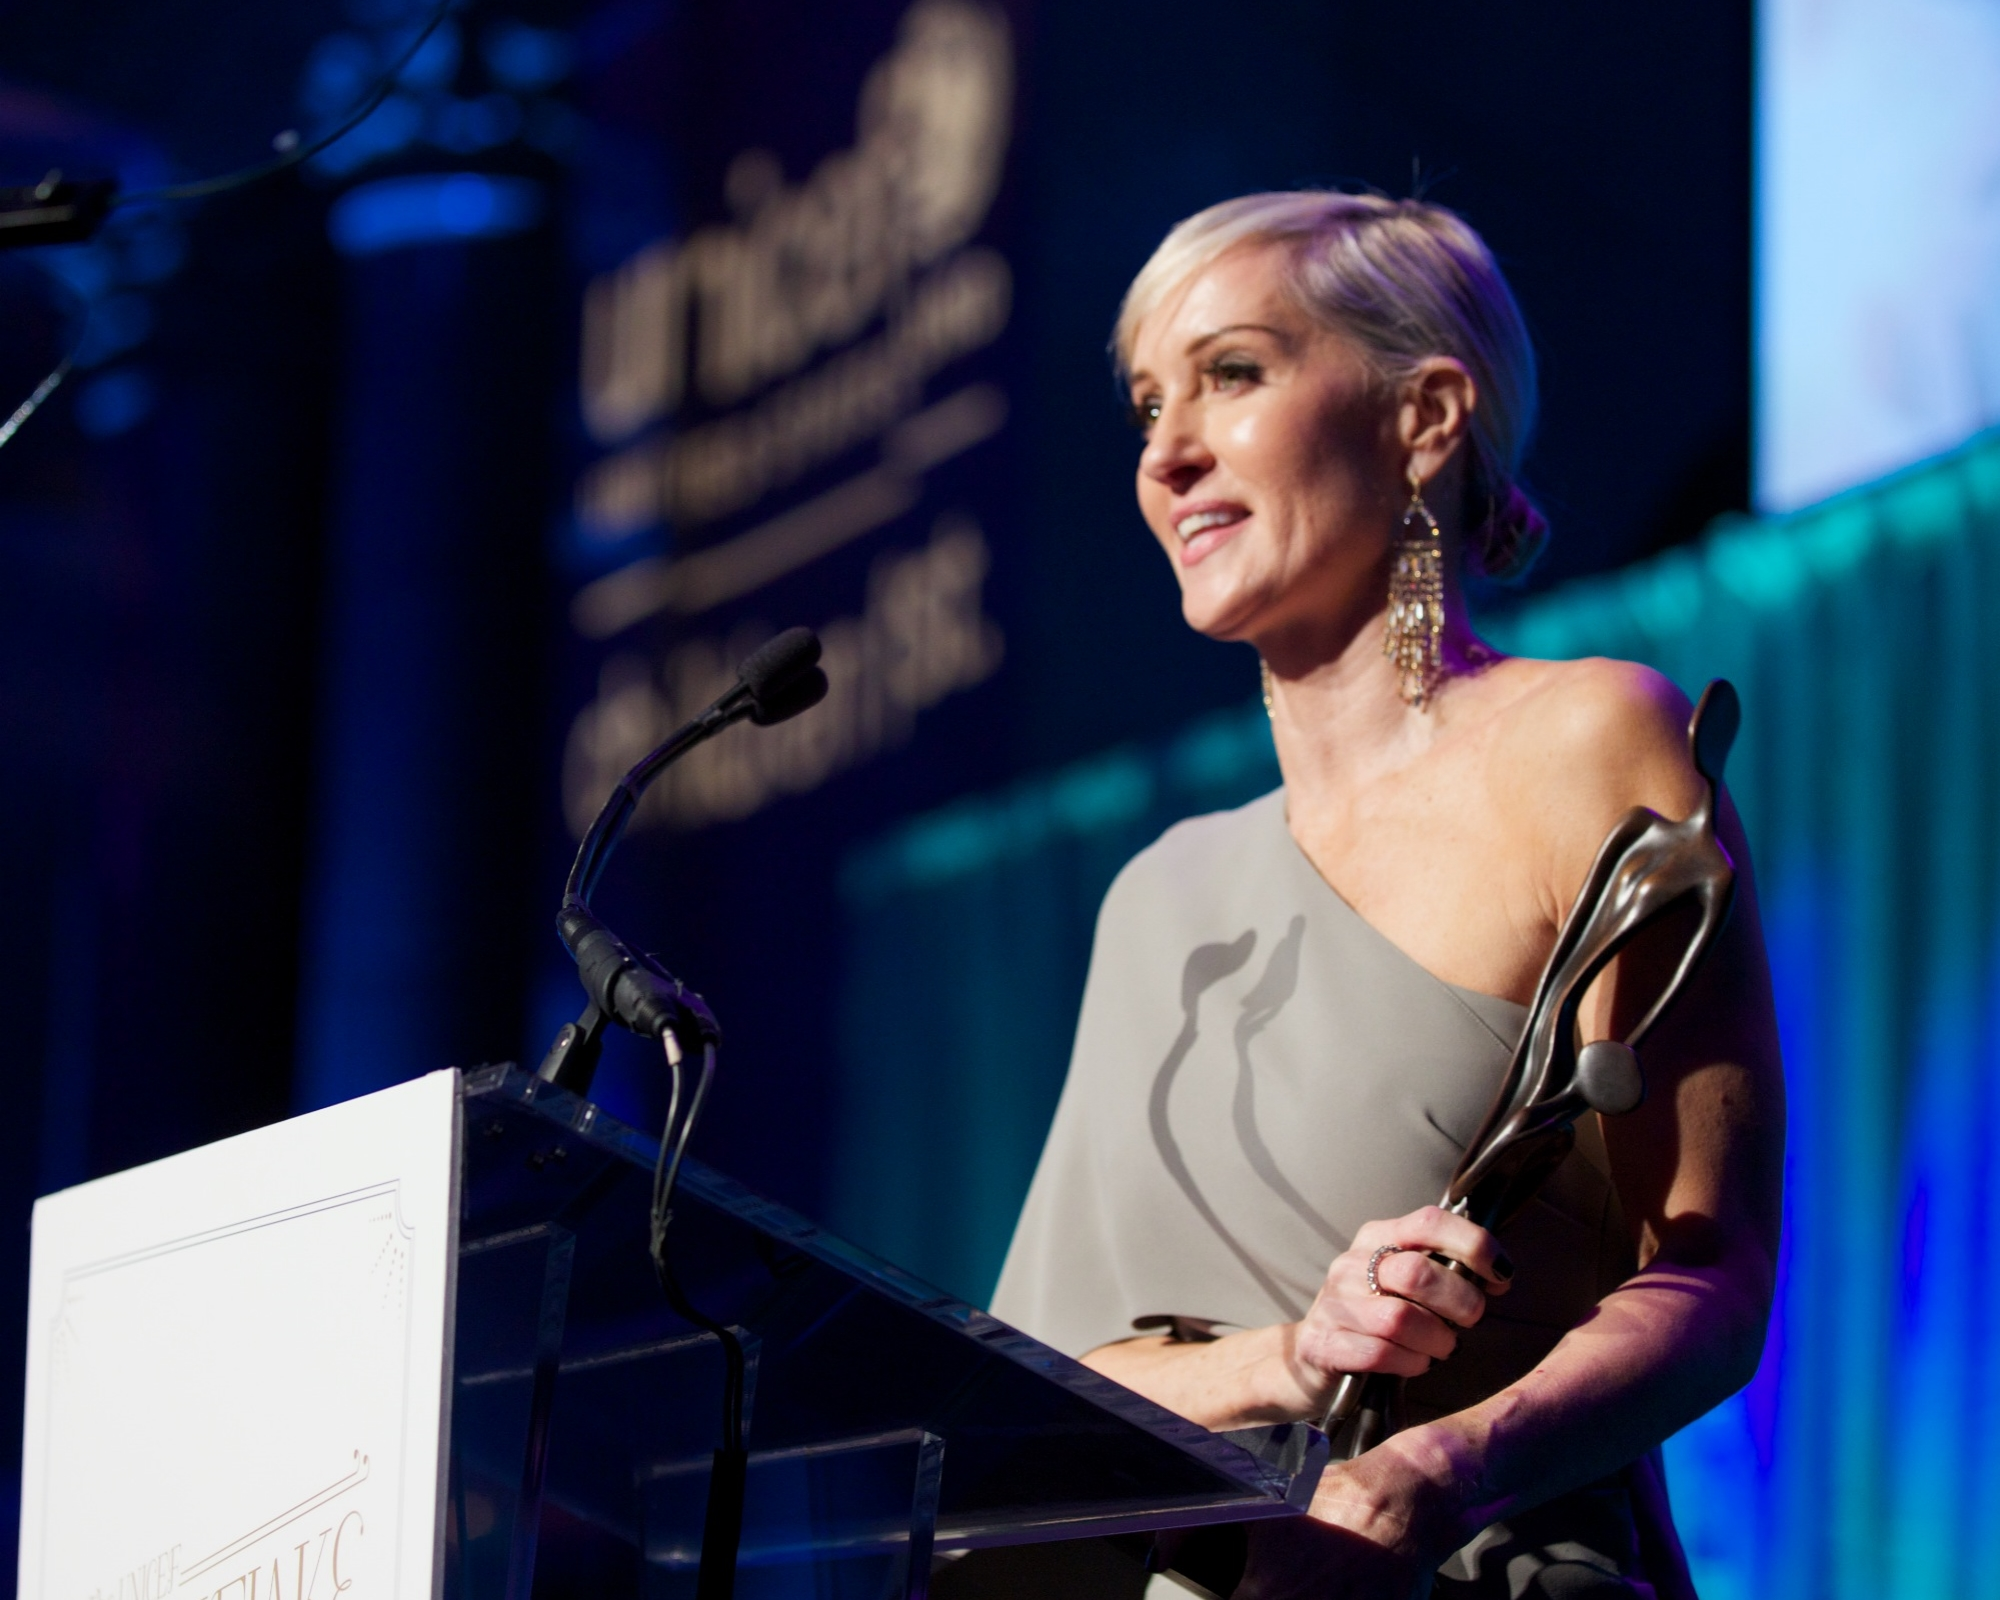 Hilary Gumbel, Recipient of the 2014 Audrey Hepburn Humanitarian Award © 2014 Julie Skarratt Photography Inc./U.S. Fund for UNICEF